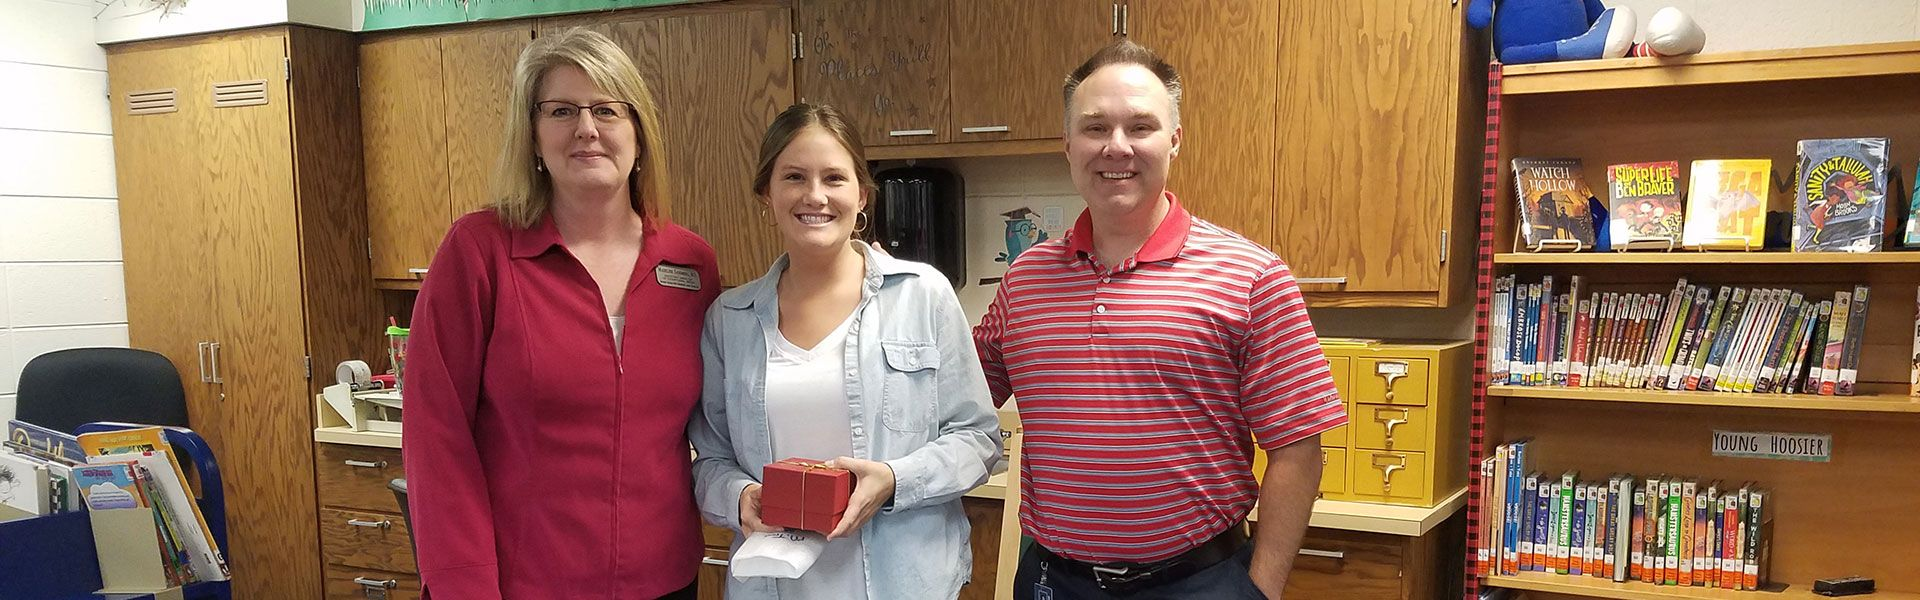 Honoring Megan Trout, Speech Therapist at Rossville Elementary School